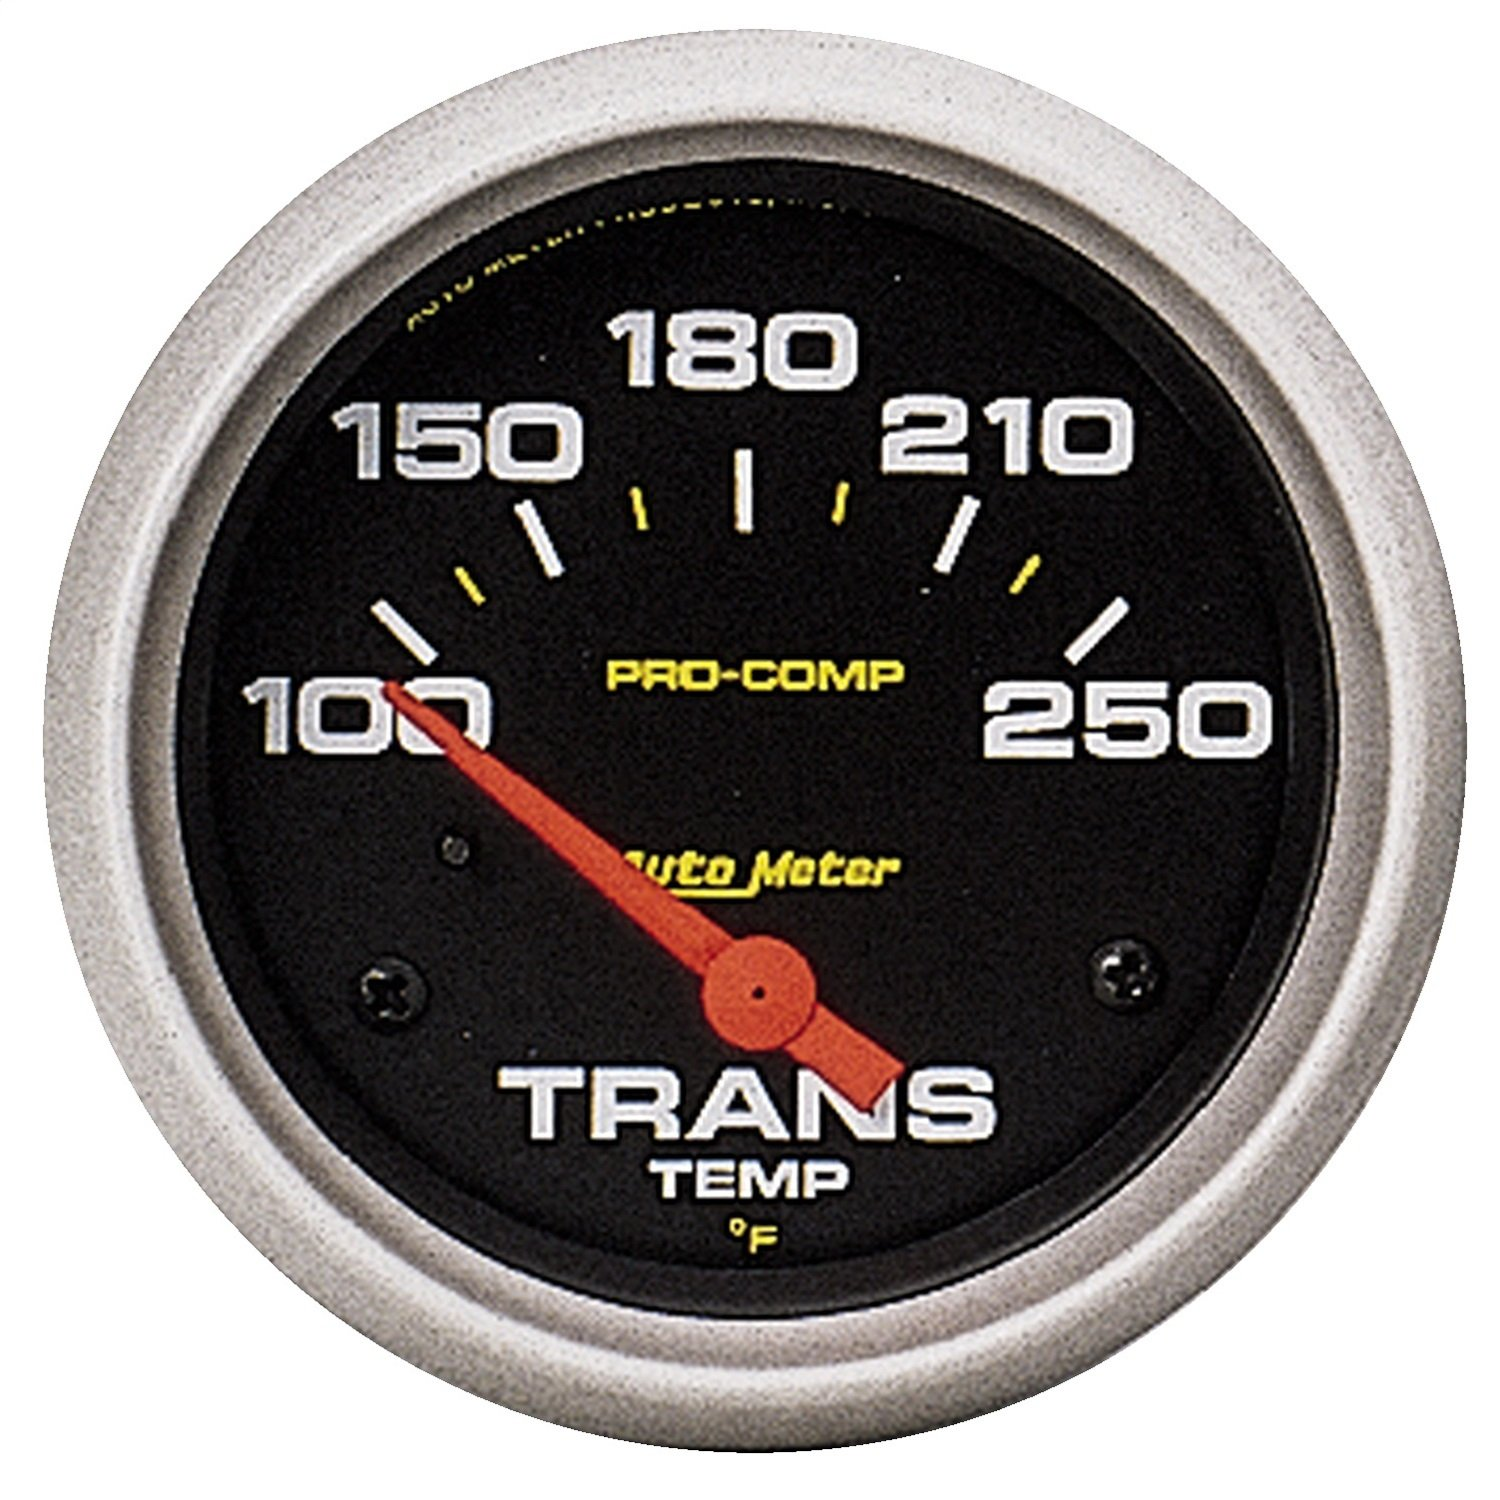 Auto Meter 5457 Pro-Comp Electric Transmission Temperature Gauge